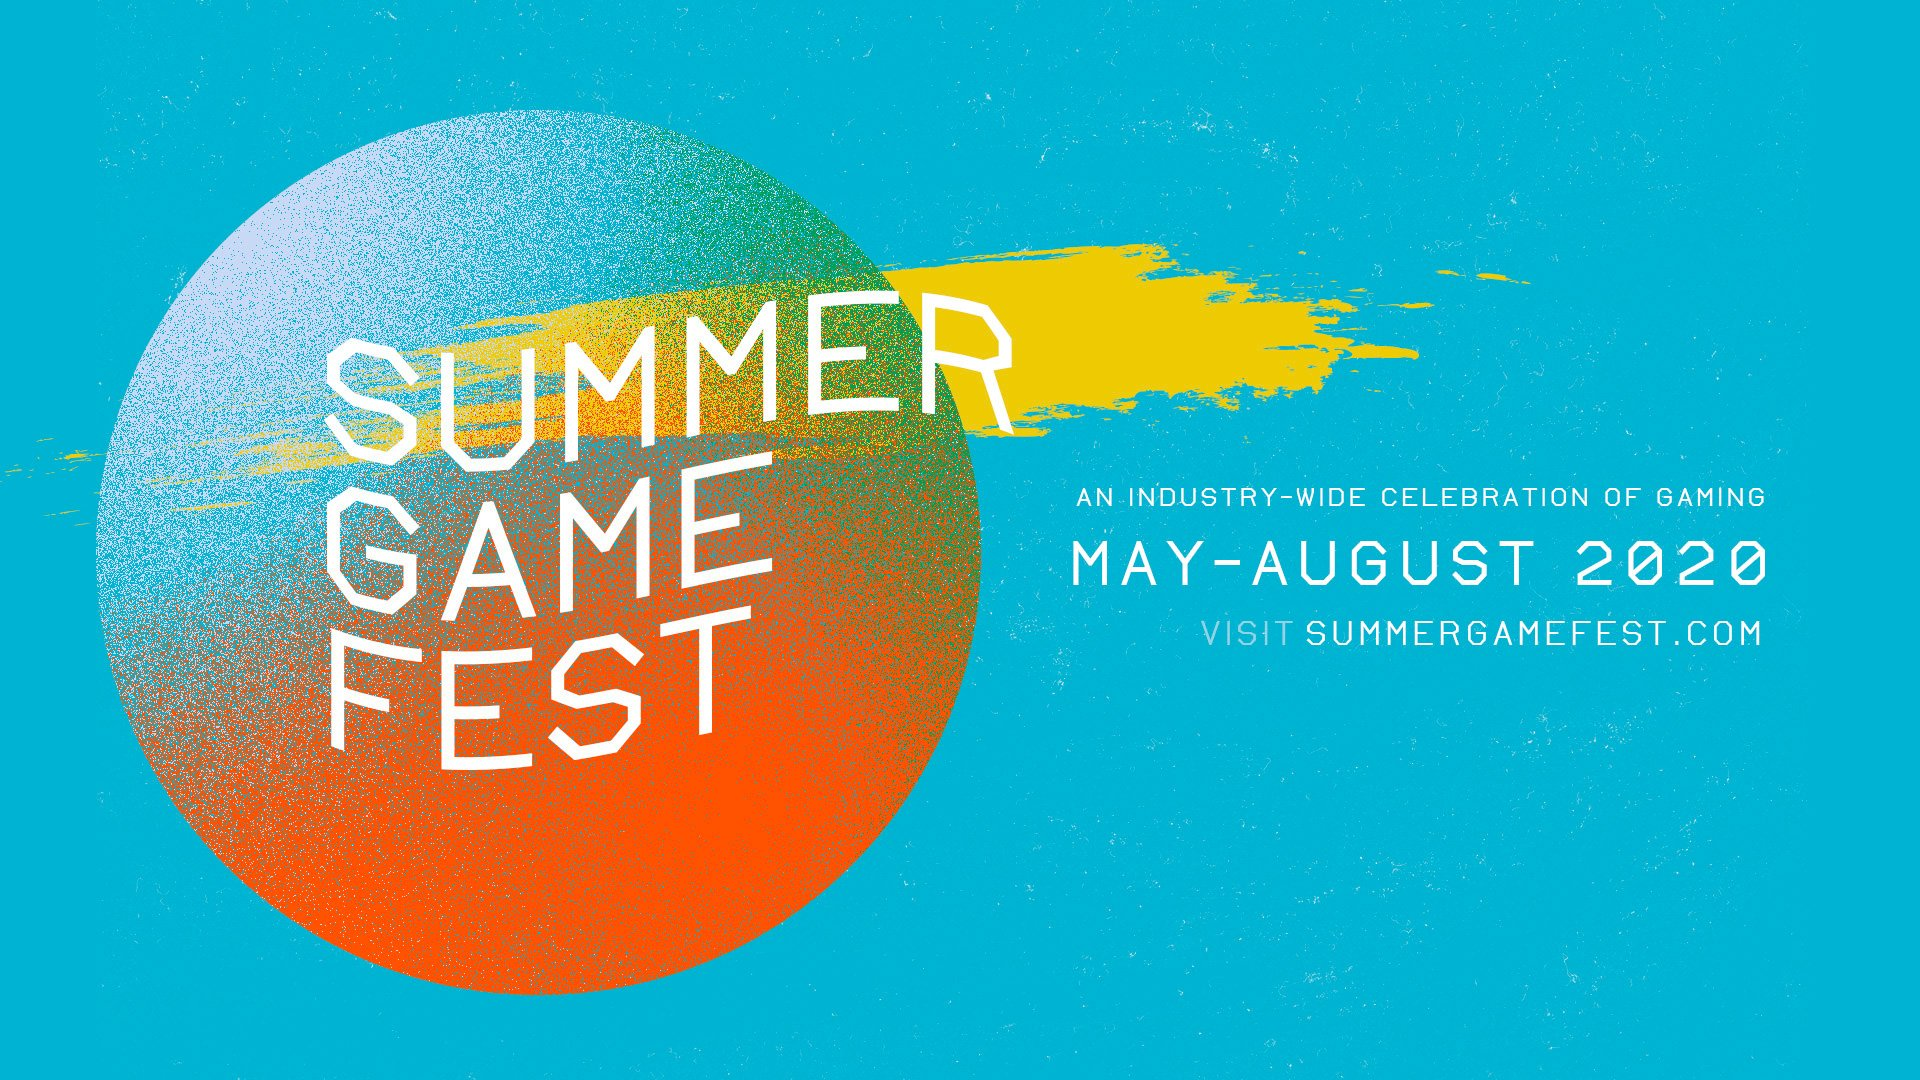 Summer Game Fest is bringing a bunch of game publishers together to share news and demos screenshot